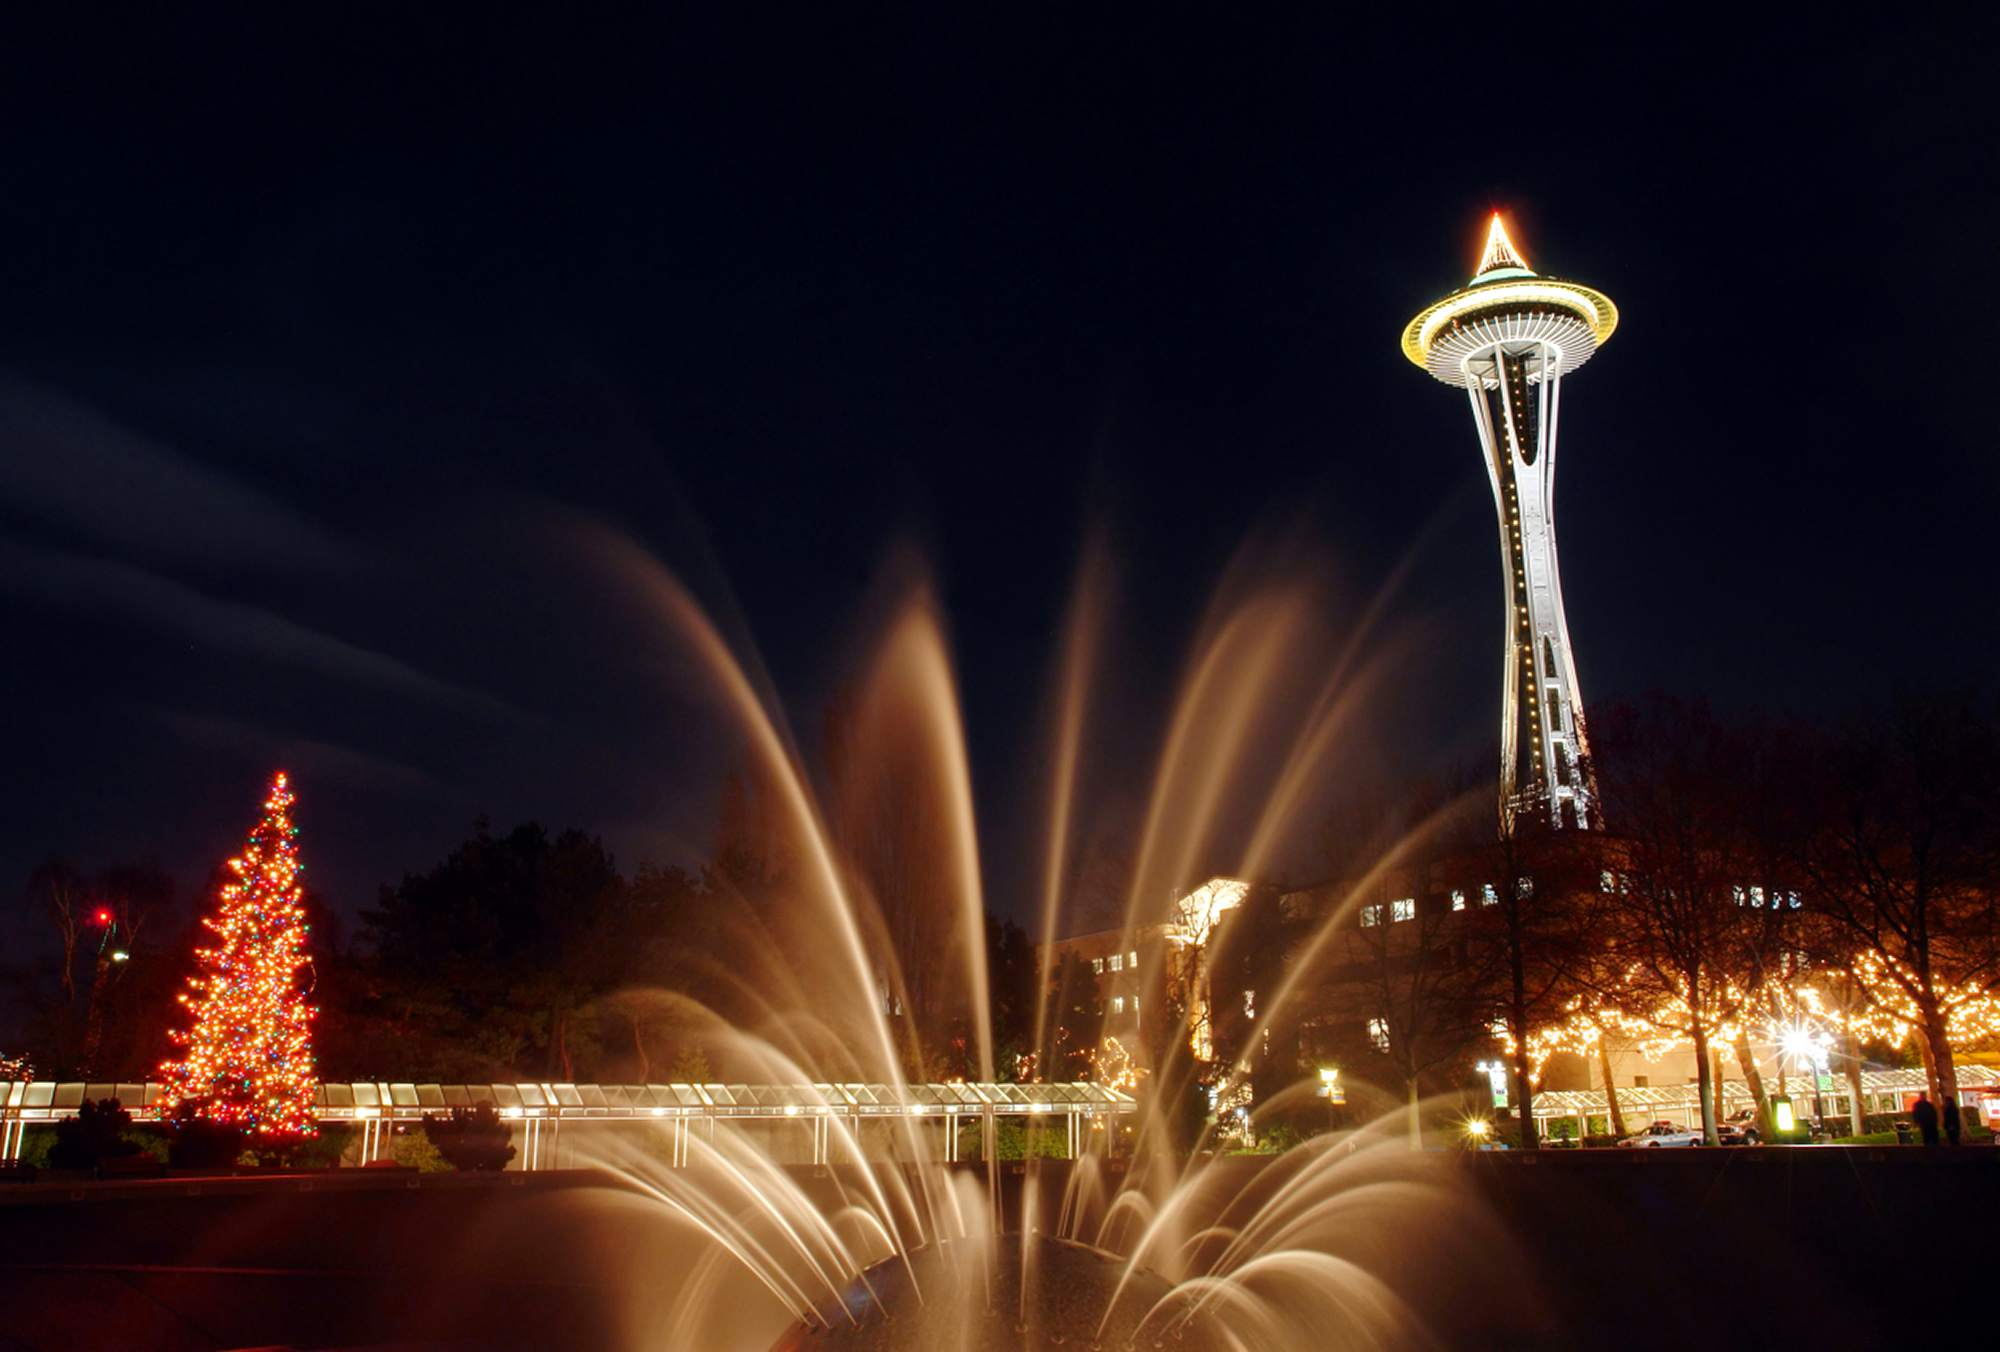 Seattle Center and the Space Needle Lit Up During Winterfest